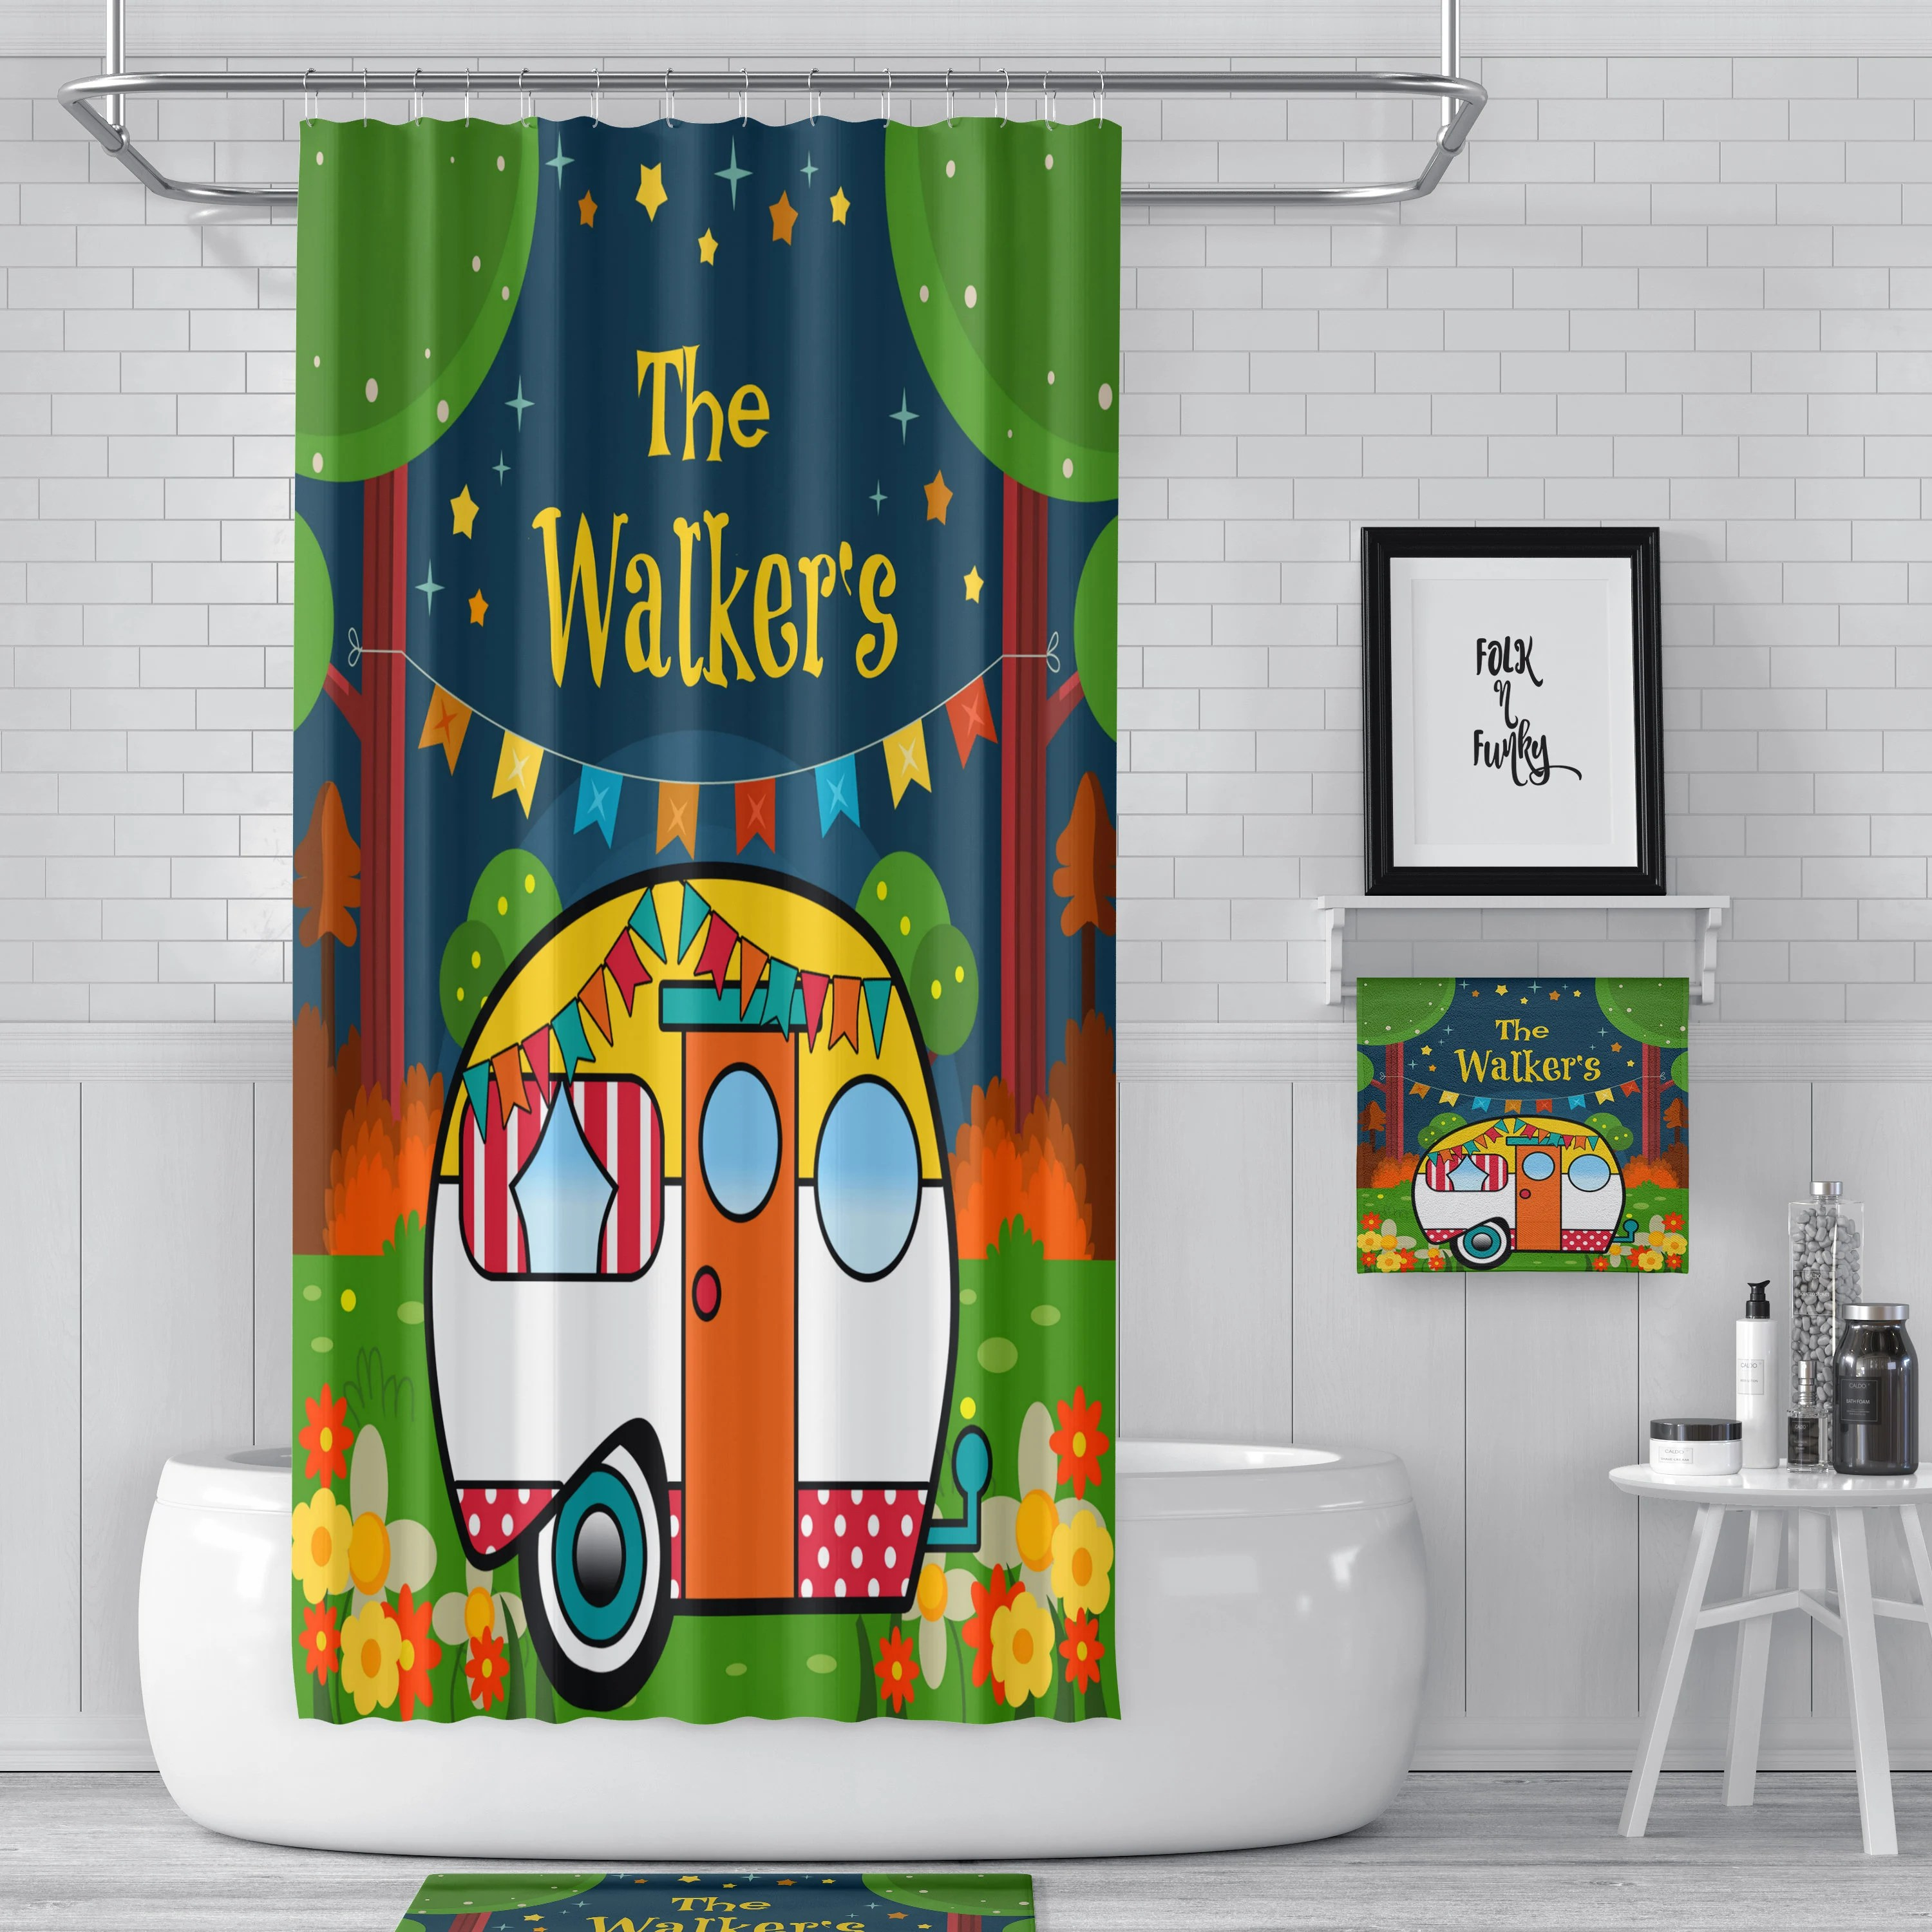 Rv Shower Curtain 47 X 64 Rv Sized Shower Curtain 47x64 Custom Personalized Camper Decor